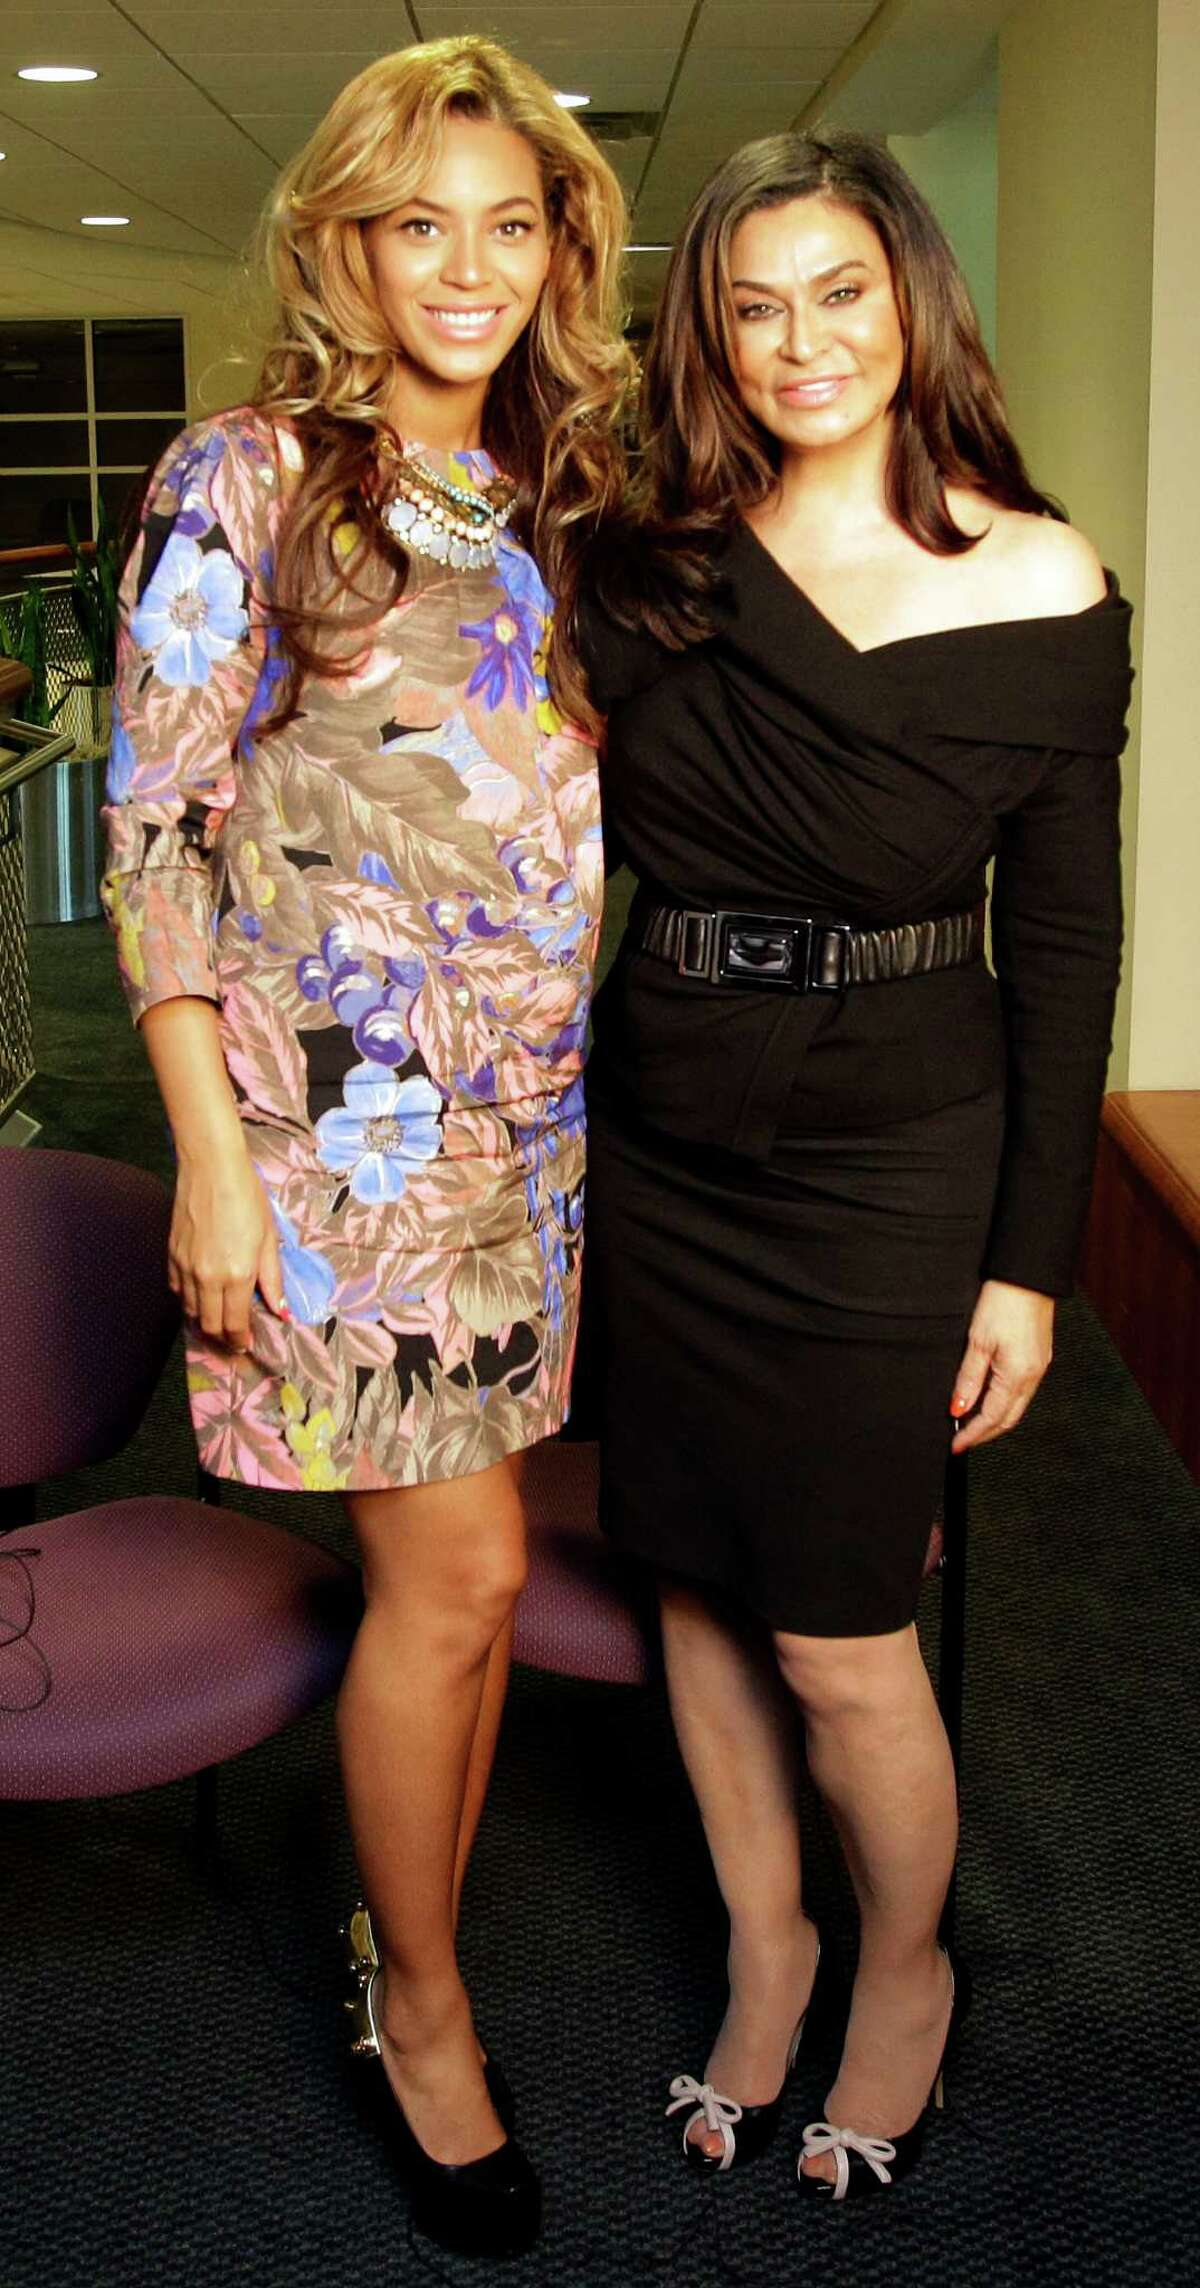 Beyonce Knowles(born in 1981)andTina Knowles (born in 1951)